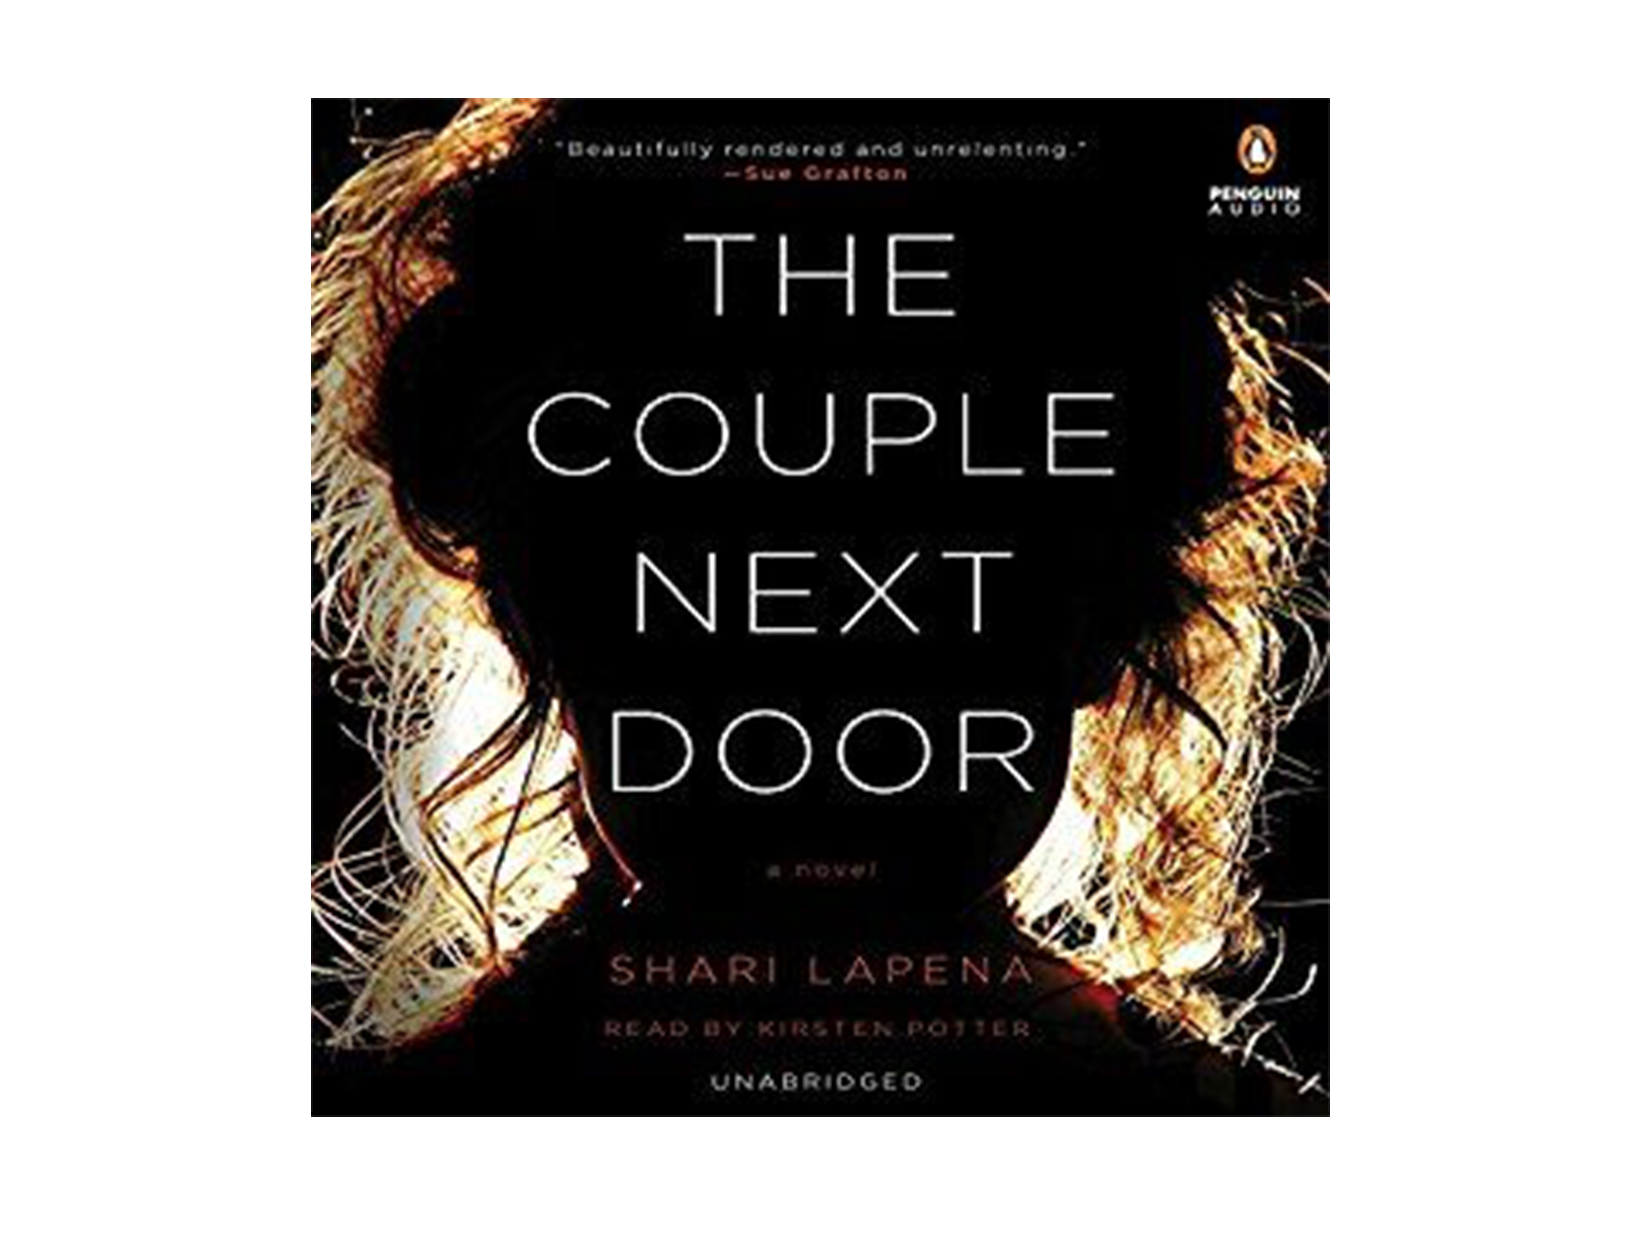 The Couple Next Door by Shari Lapena, read by Kirsten Potter